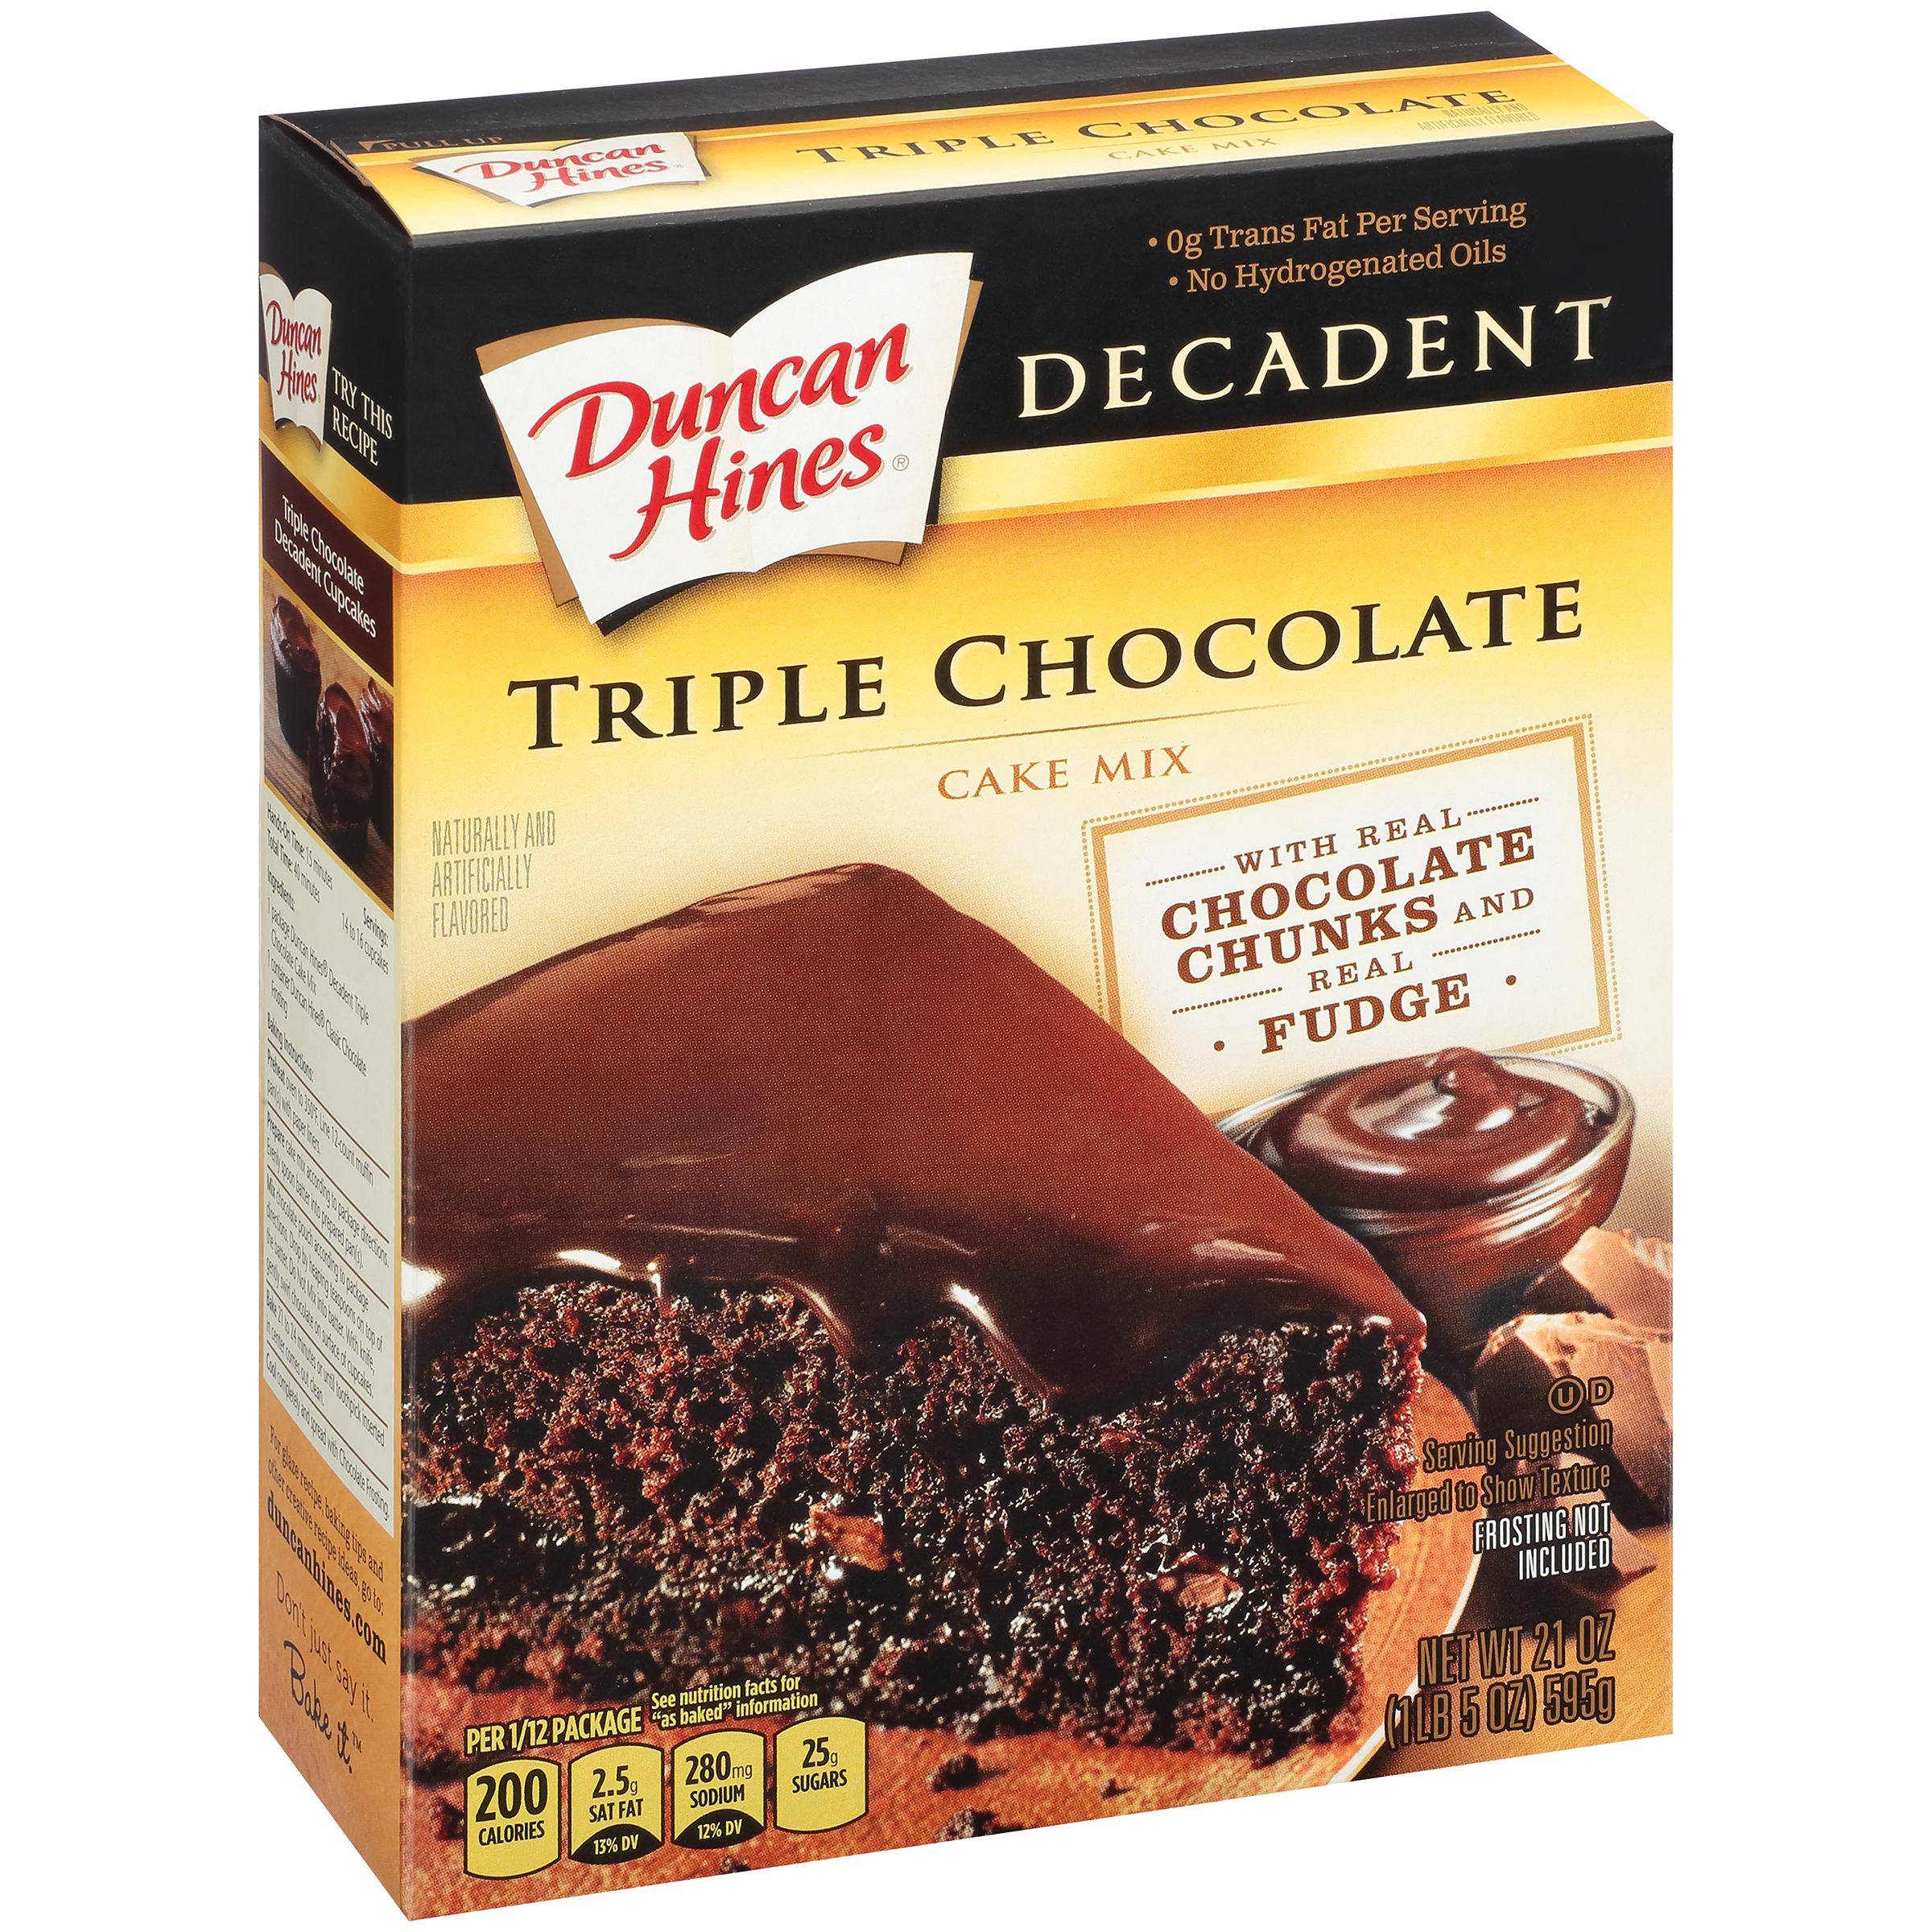 Duncan Hines Decadent Cake Mix Triple Chocolate, 21.0 OZ by Pinnacle Foods Group LLC